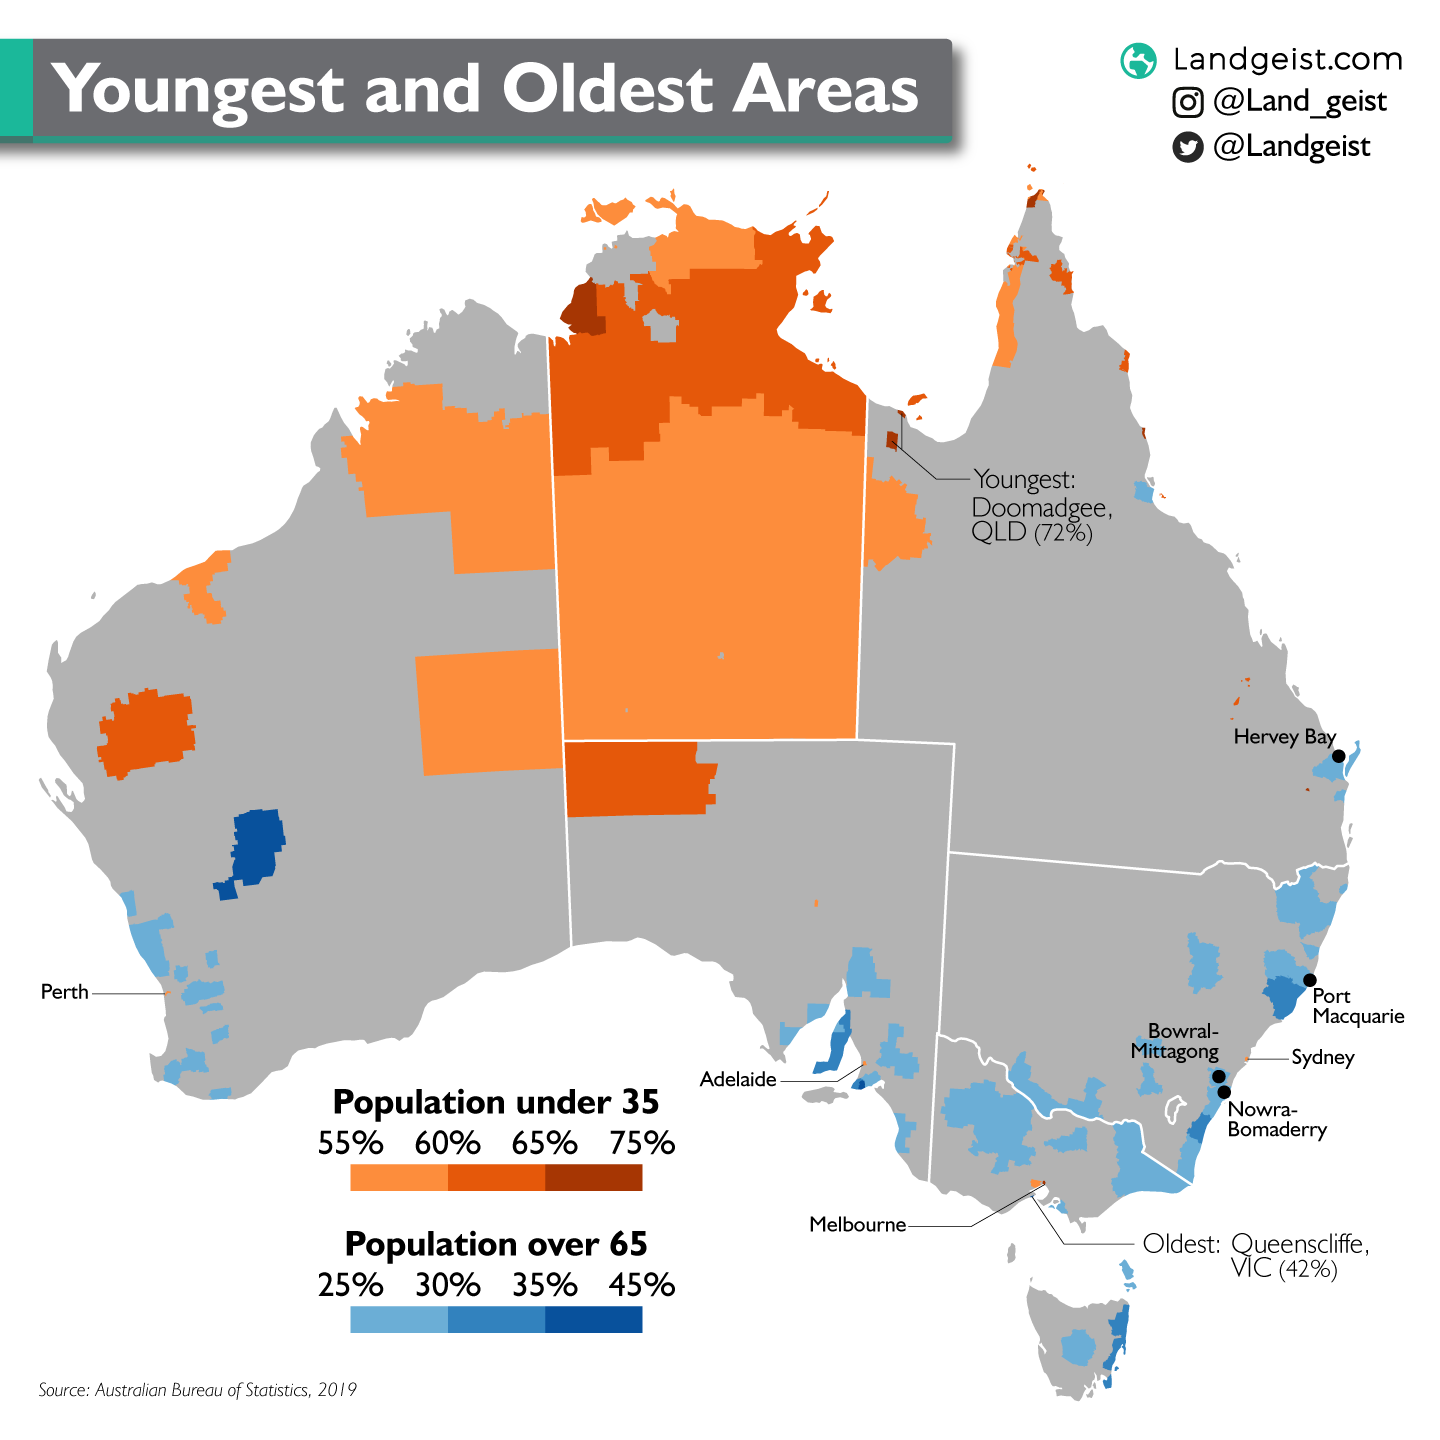 Map of Australia showing the areas with the youngest and oldest population.